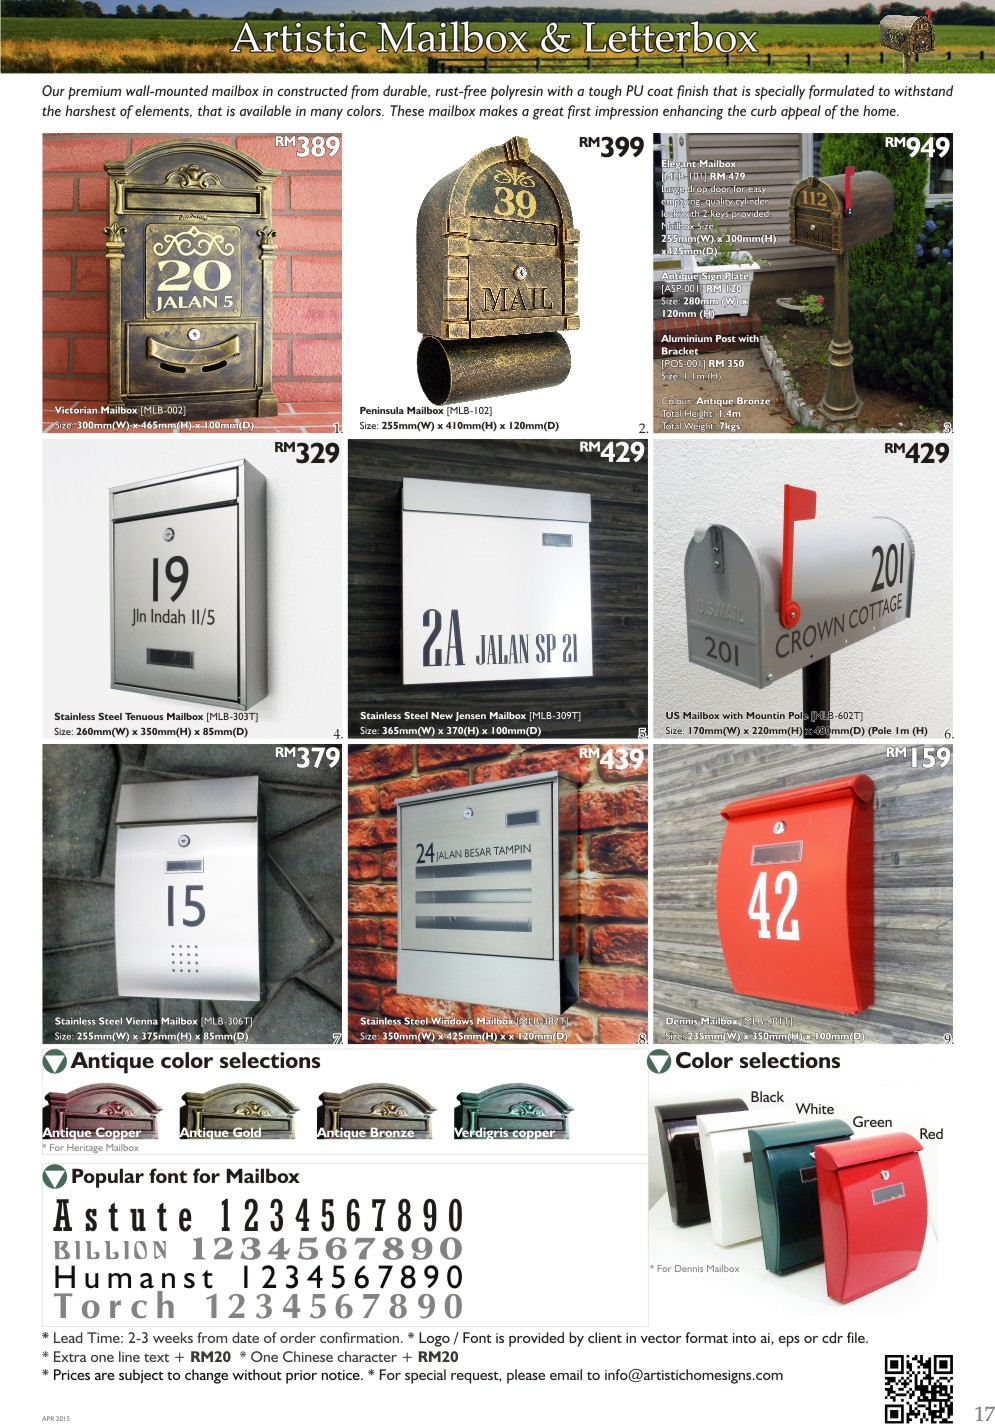 2015 Heritage Mailboxes New Stainless Steel Letterbox